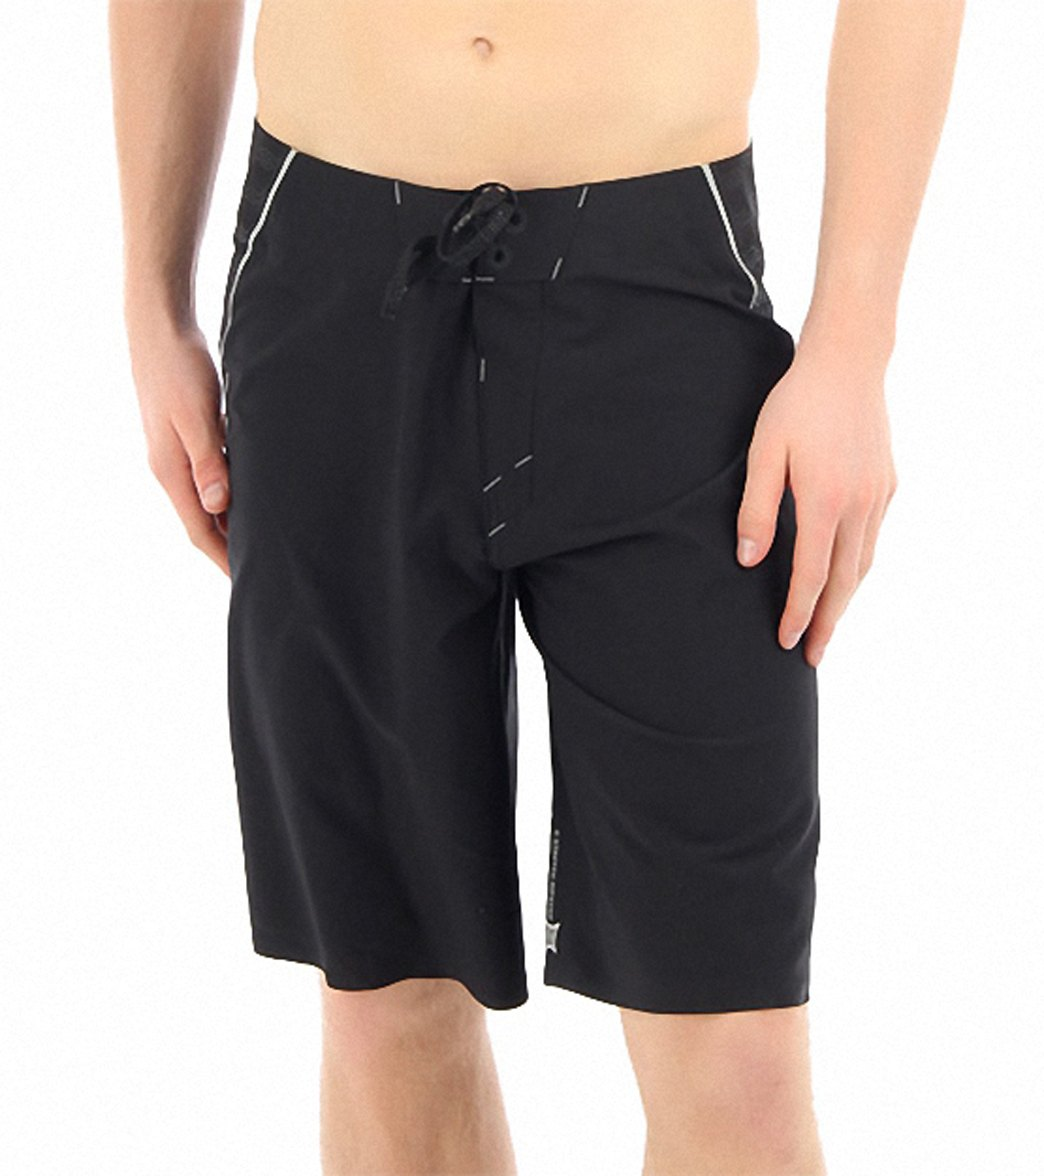 board shorts oakley nph8  Oakley Men's Blade III Boardshort With Compression at SwimOutletcom